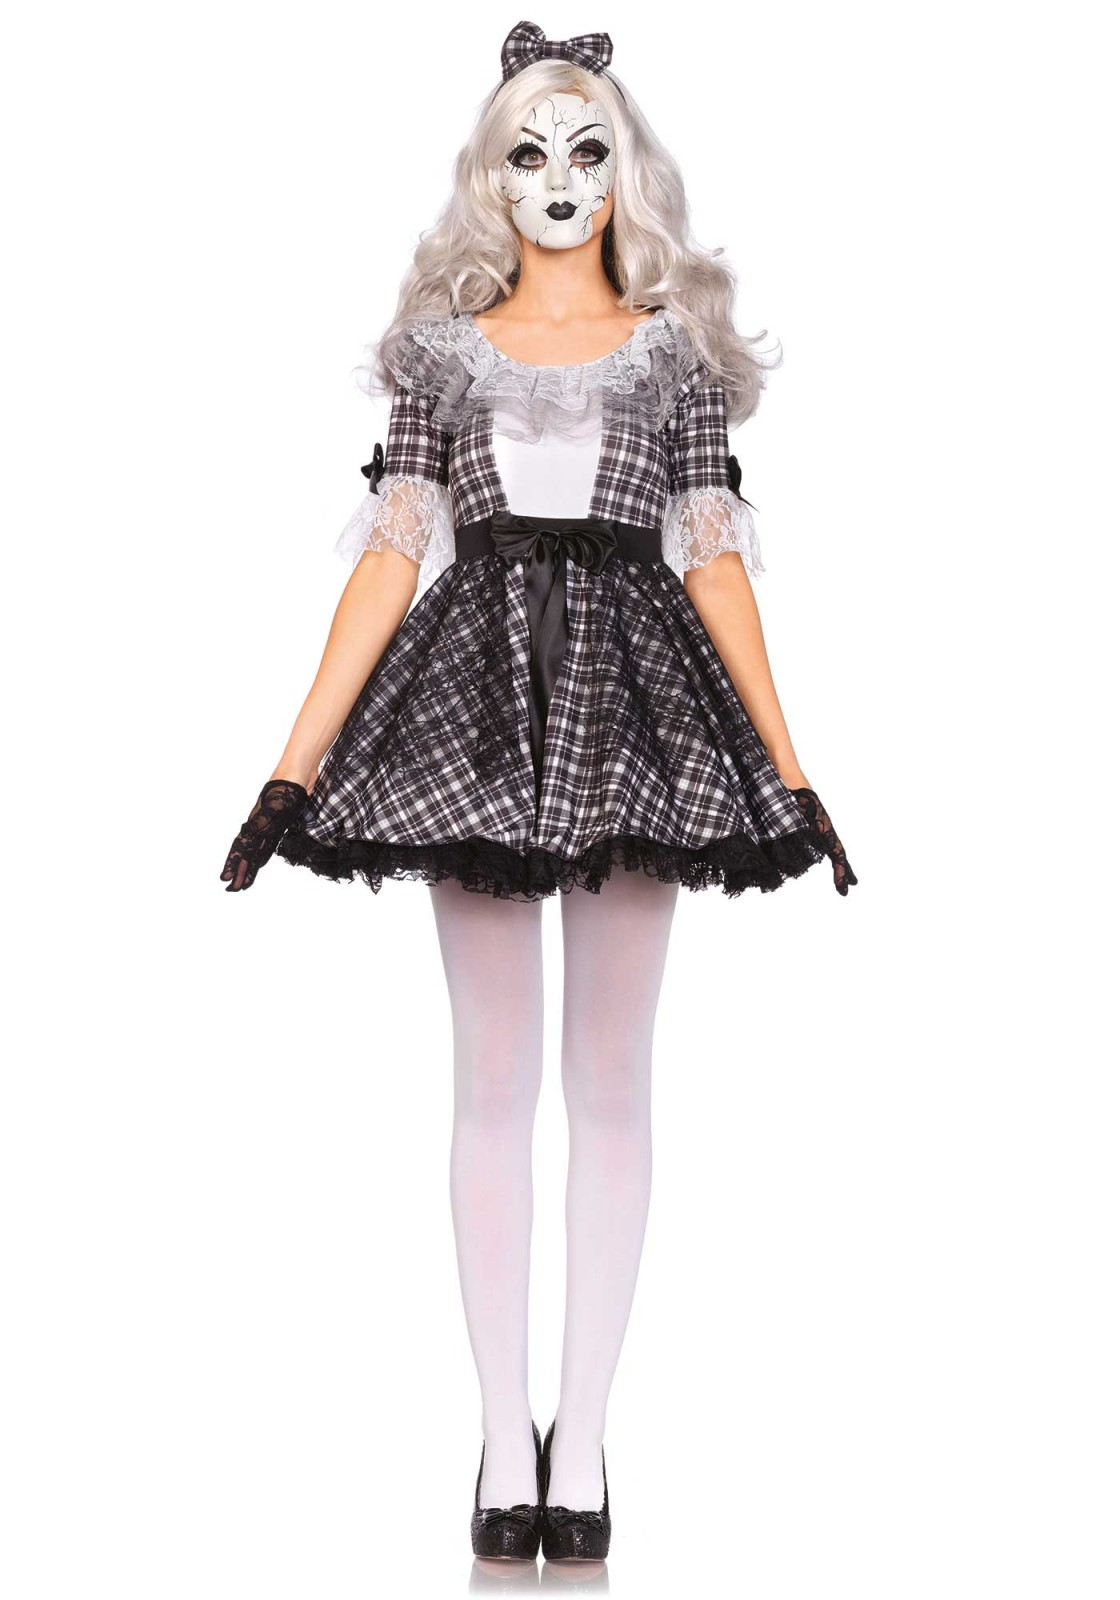 Don't knock over this procelain doll! This 3PC doll costume includes a lace trimmed dress with bows, matching bow headband, and a creepy doll face mask. Please take not that the pantyhose, gloves and wig are not included. The length of size Small, measured from the shoulder is 83cm / 33inch. The model has a length of 178 cm/ 70 inch and is wearing a size S.